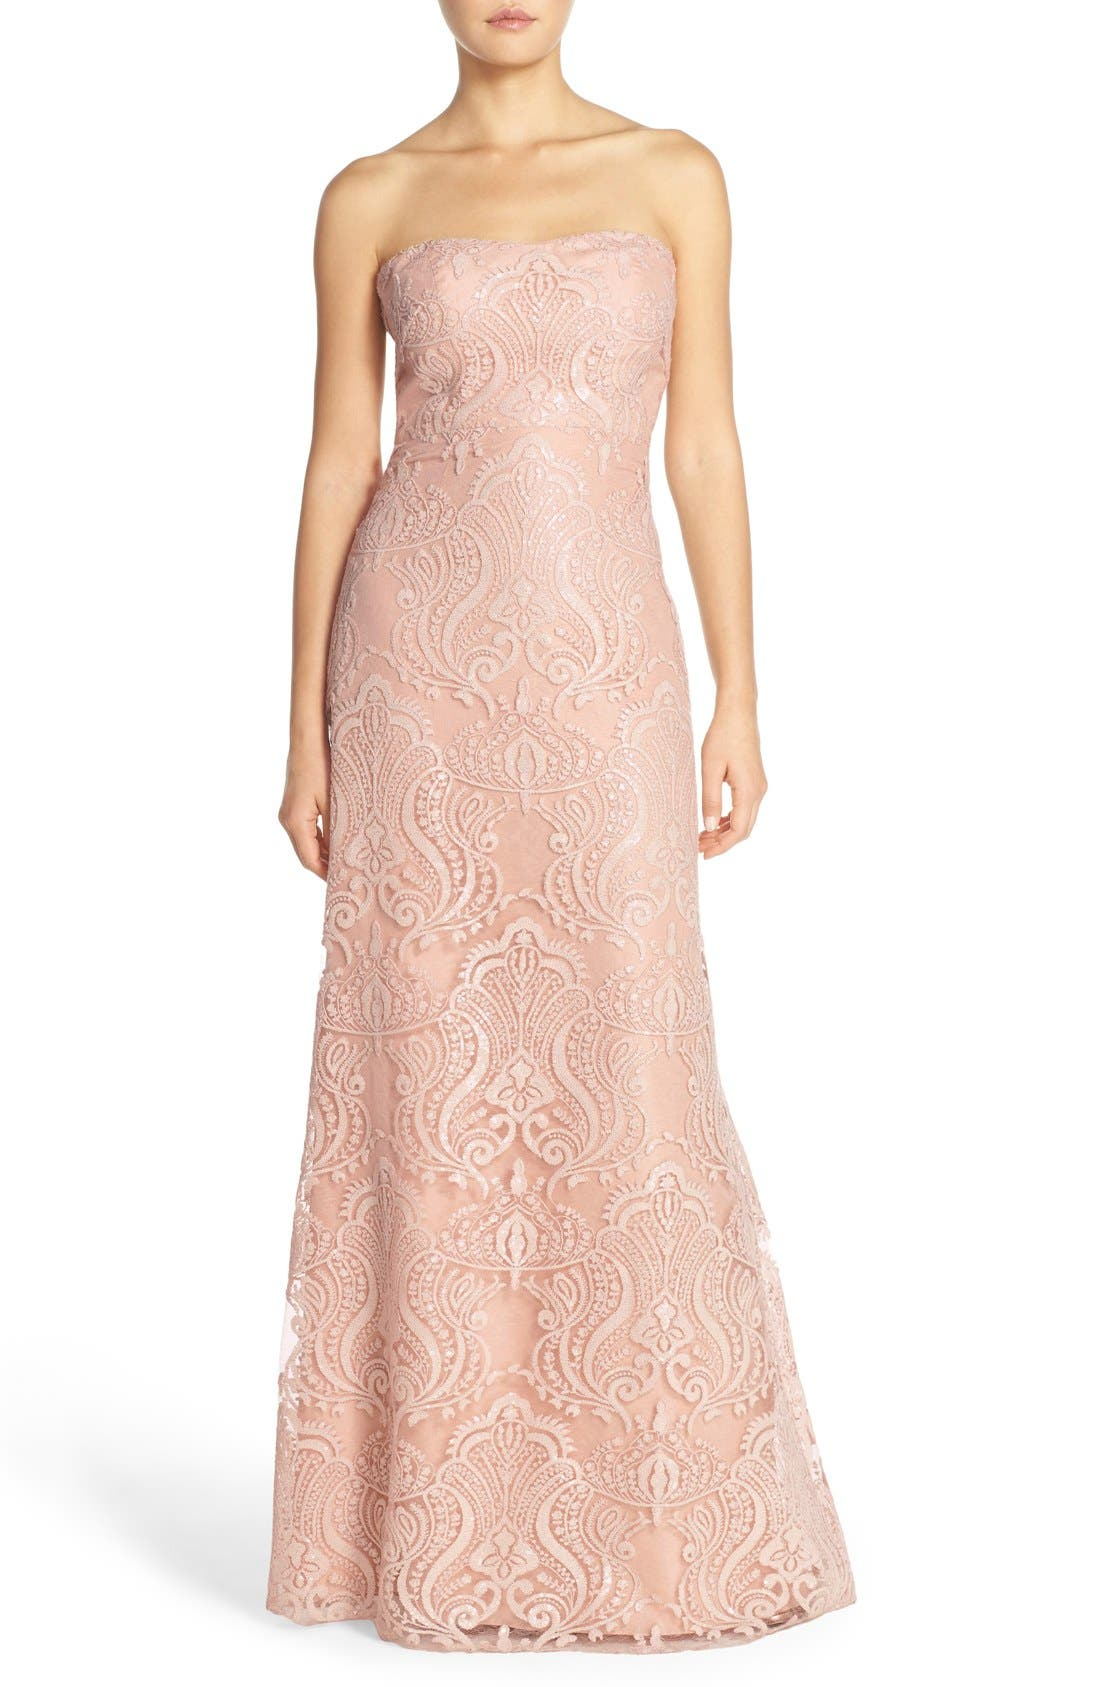 Sadie Sequin Lace Strapless A-Line Gown,                         Main,                         color, Blush